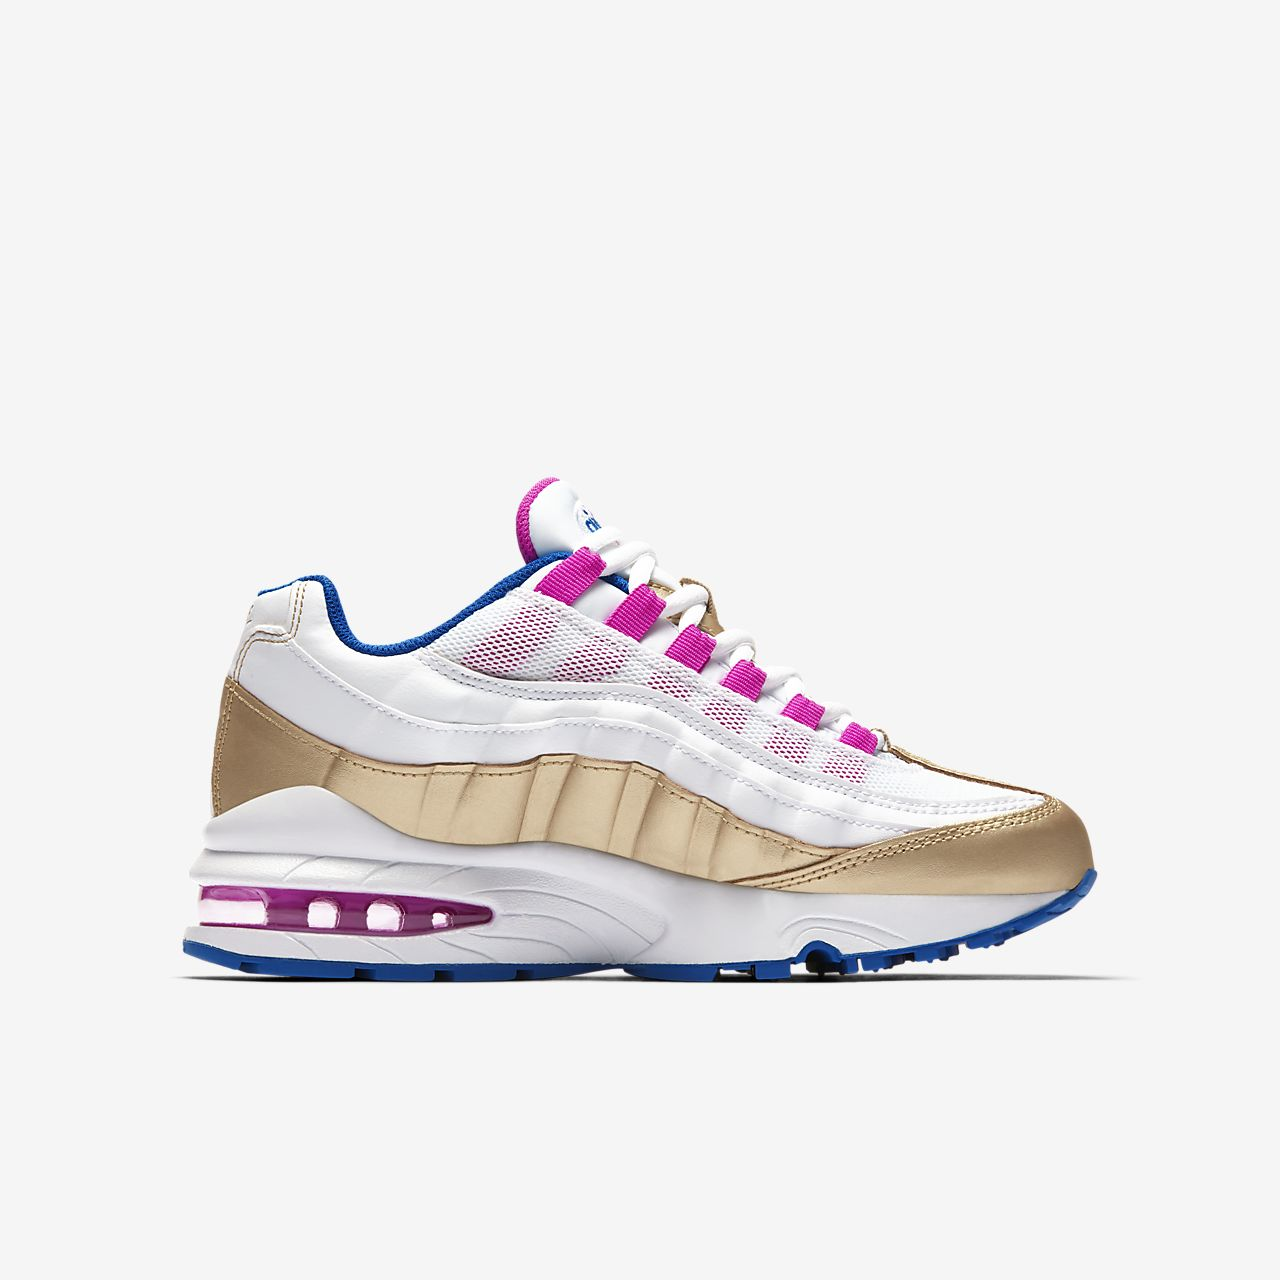 Nike Air Max 95 fucsia